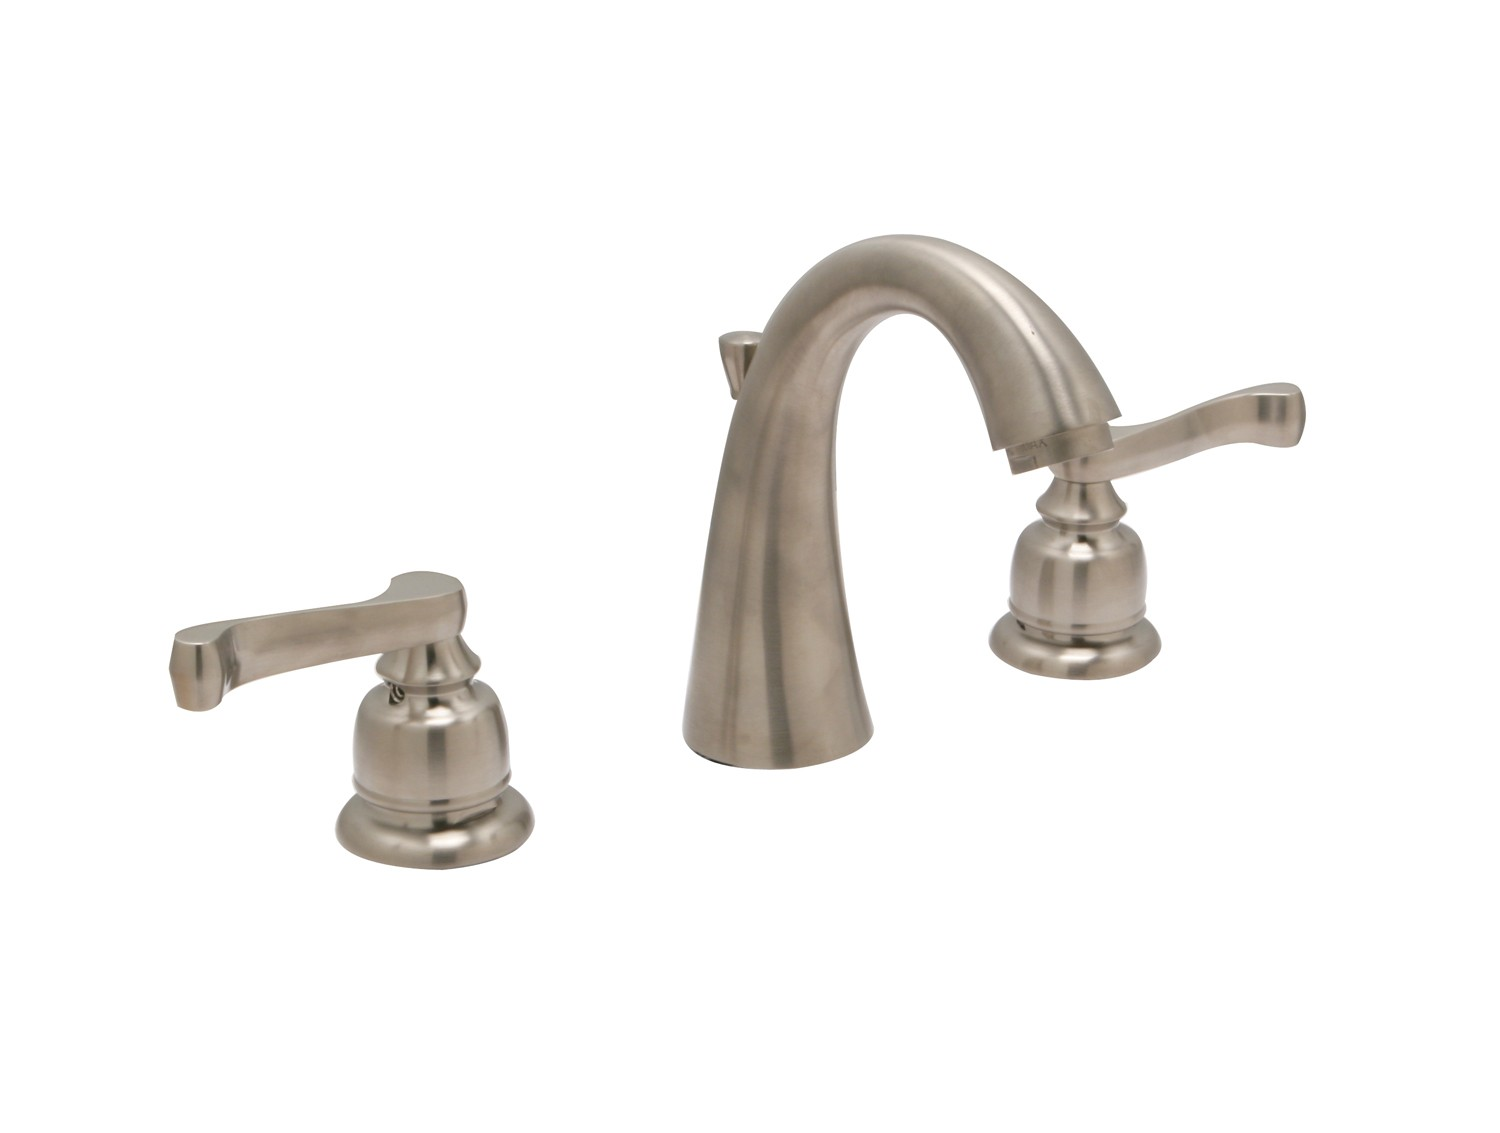 Sienna widespread faucet with a 50-50 pop-up assembly